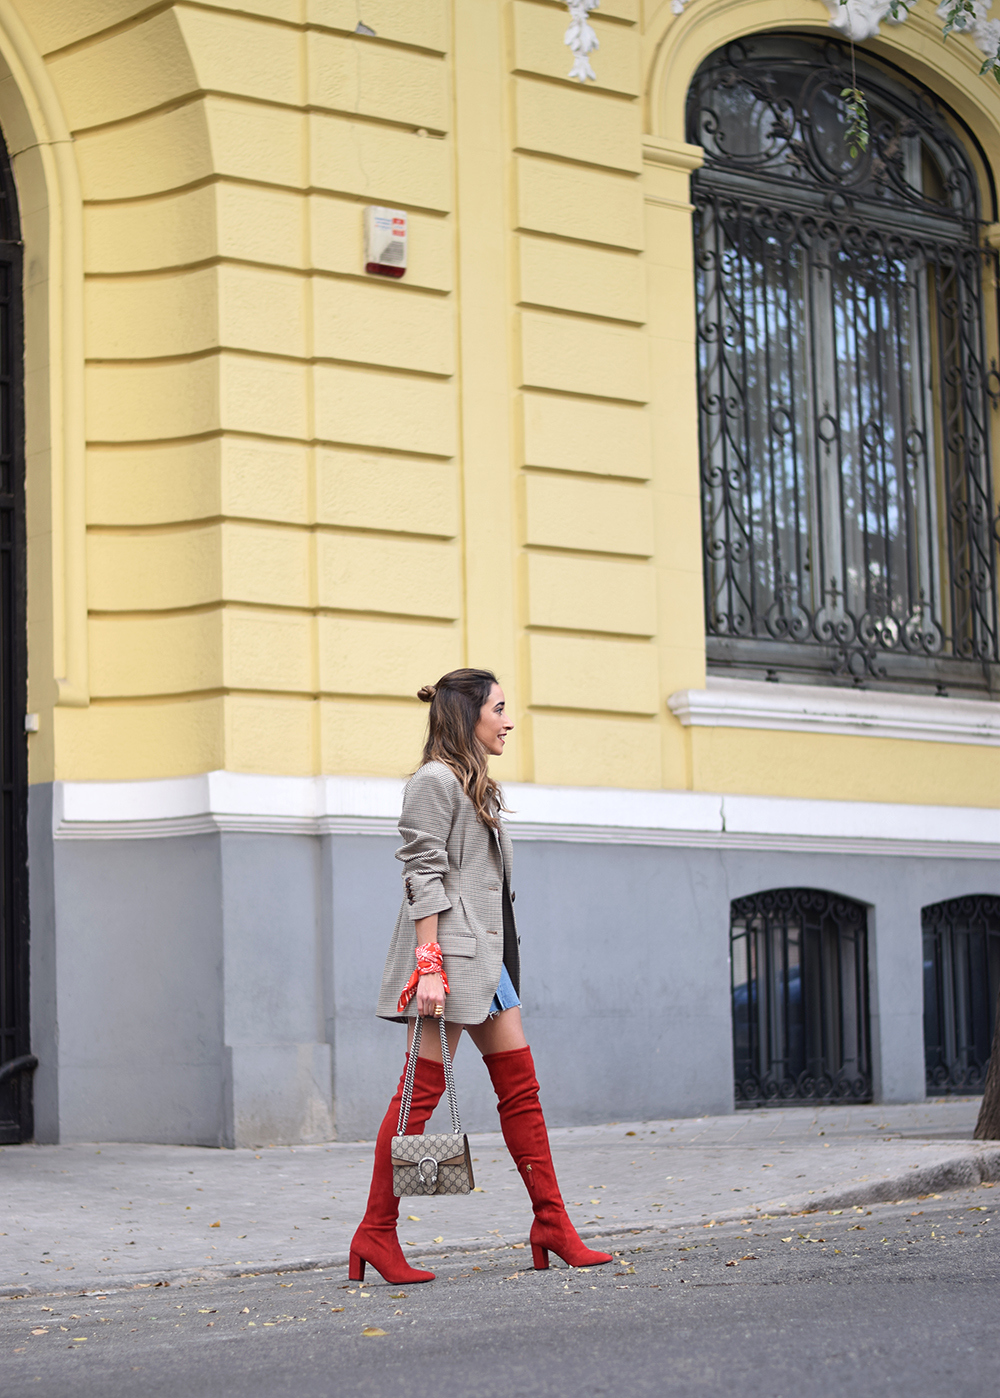 Houndstooth blazer denim skirt gucci bag red over the knee boots autumn outfit style fashion02